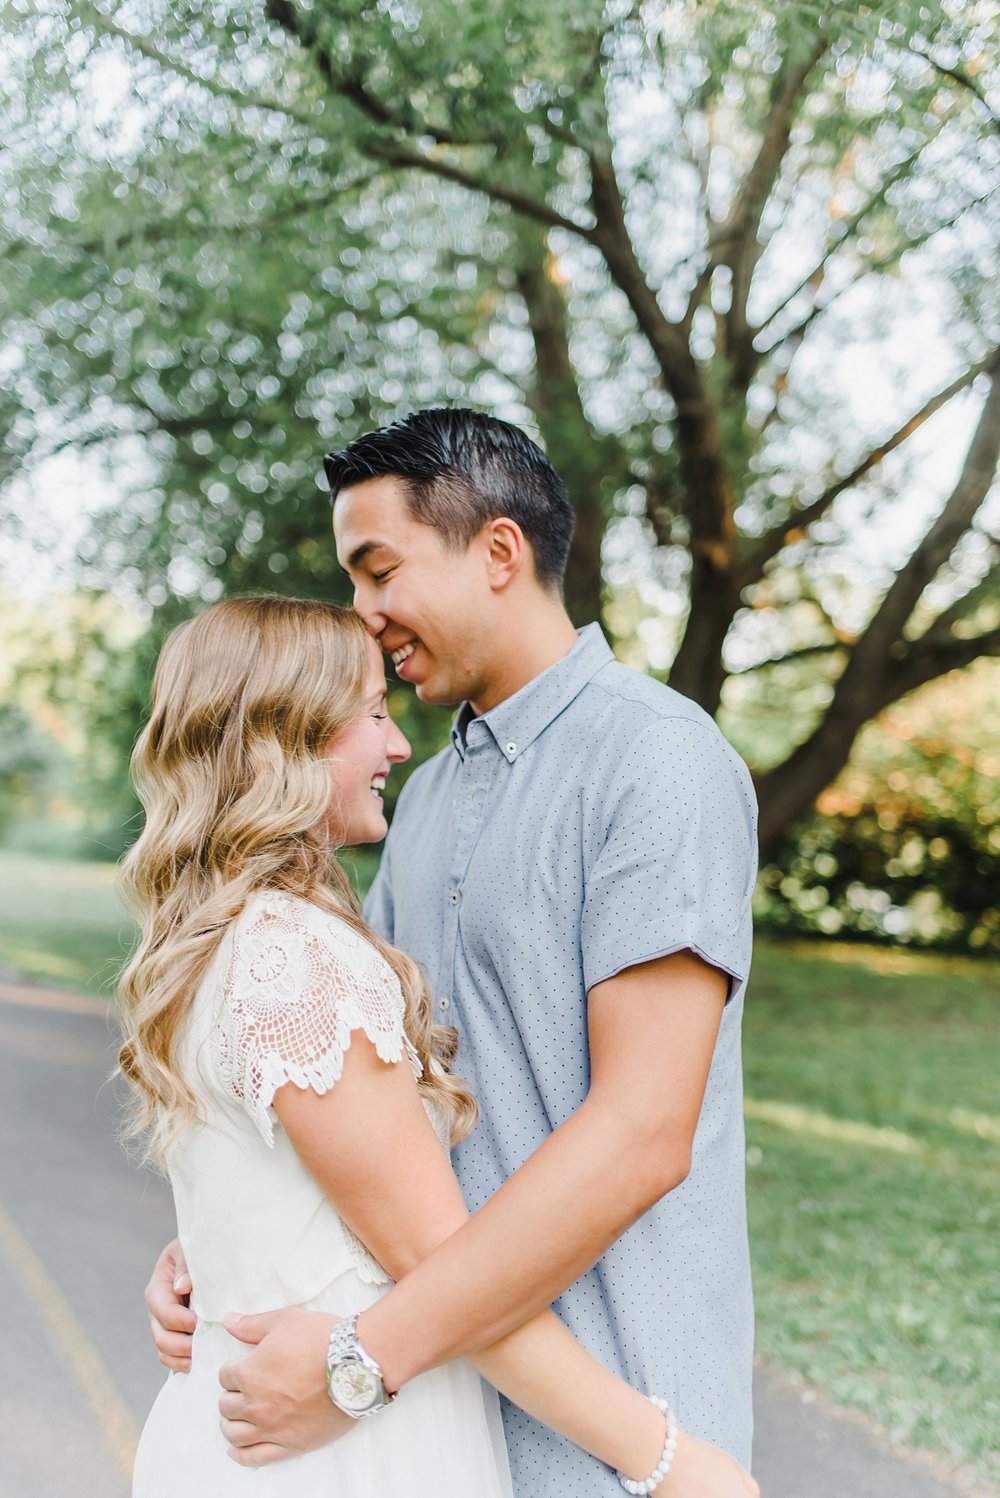 light airy indie fine art ottawa wedding photographer | Ali and Batoul Photography_0246.jpg